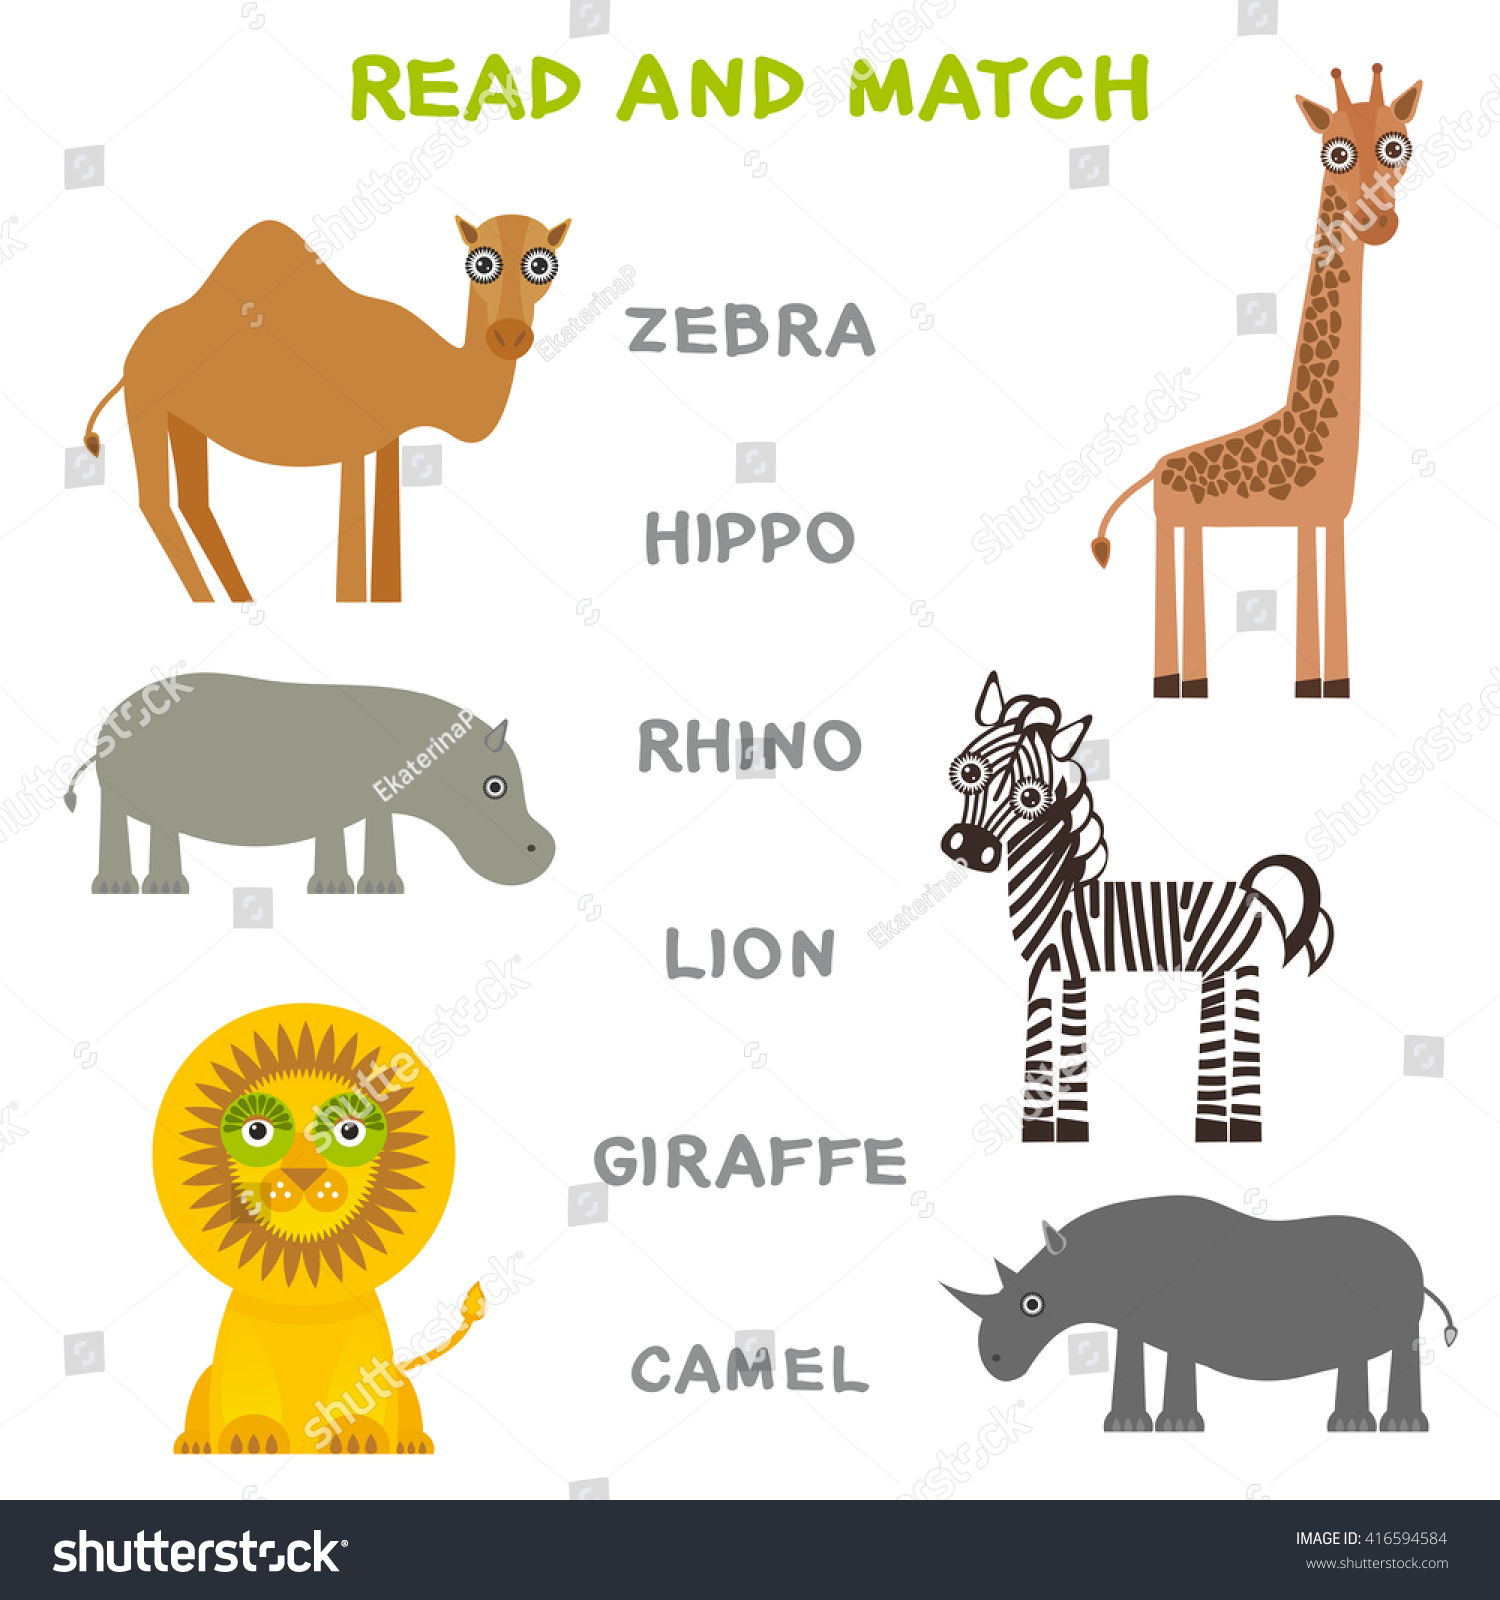 Kids Words Learning Game Worksheet Read Stock Vector